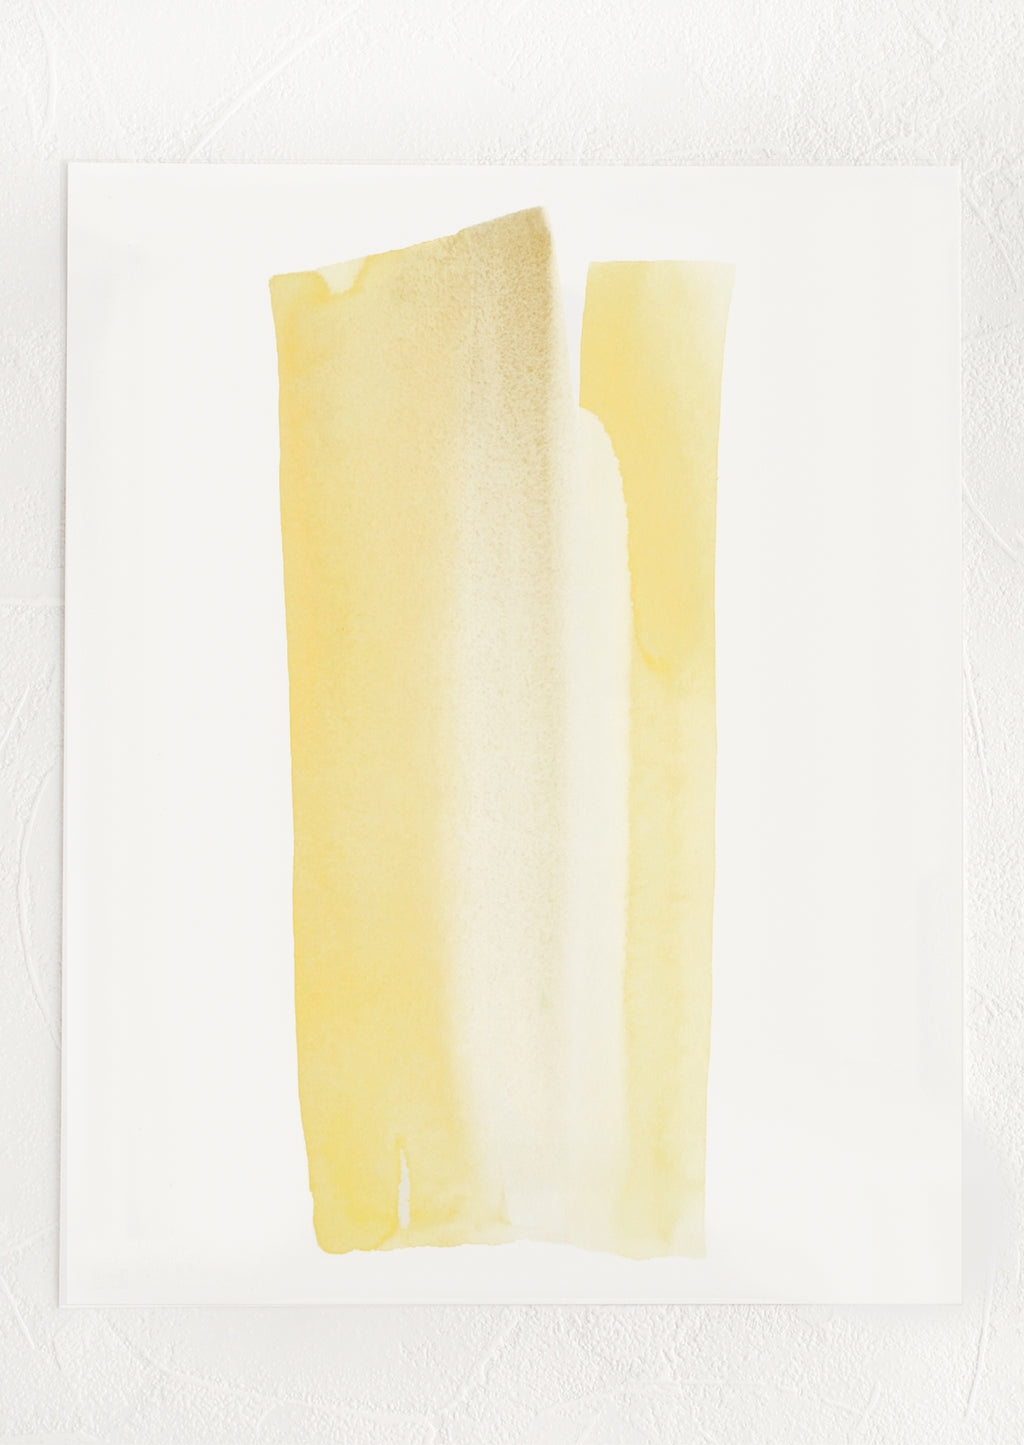 1: An art print with streak-like watercolor form in shades of yellow.